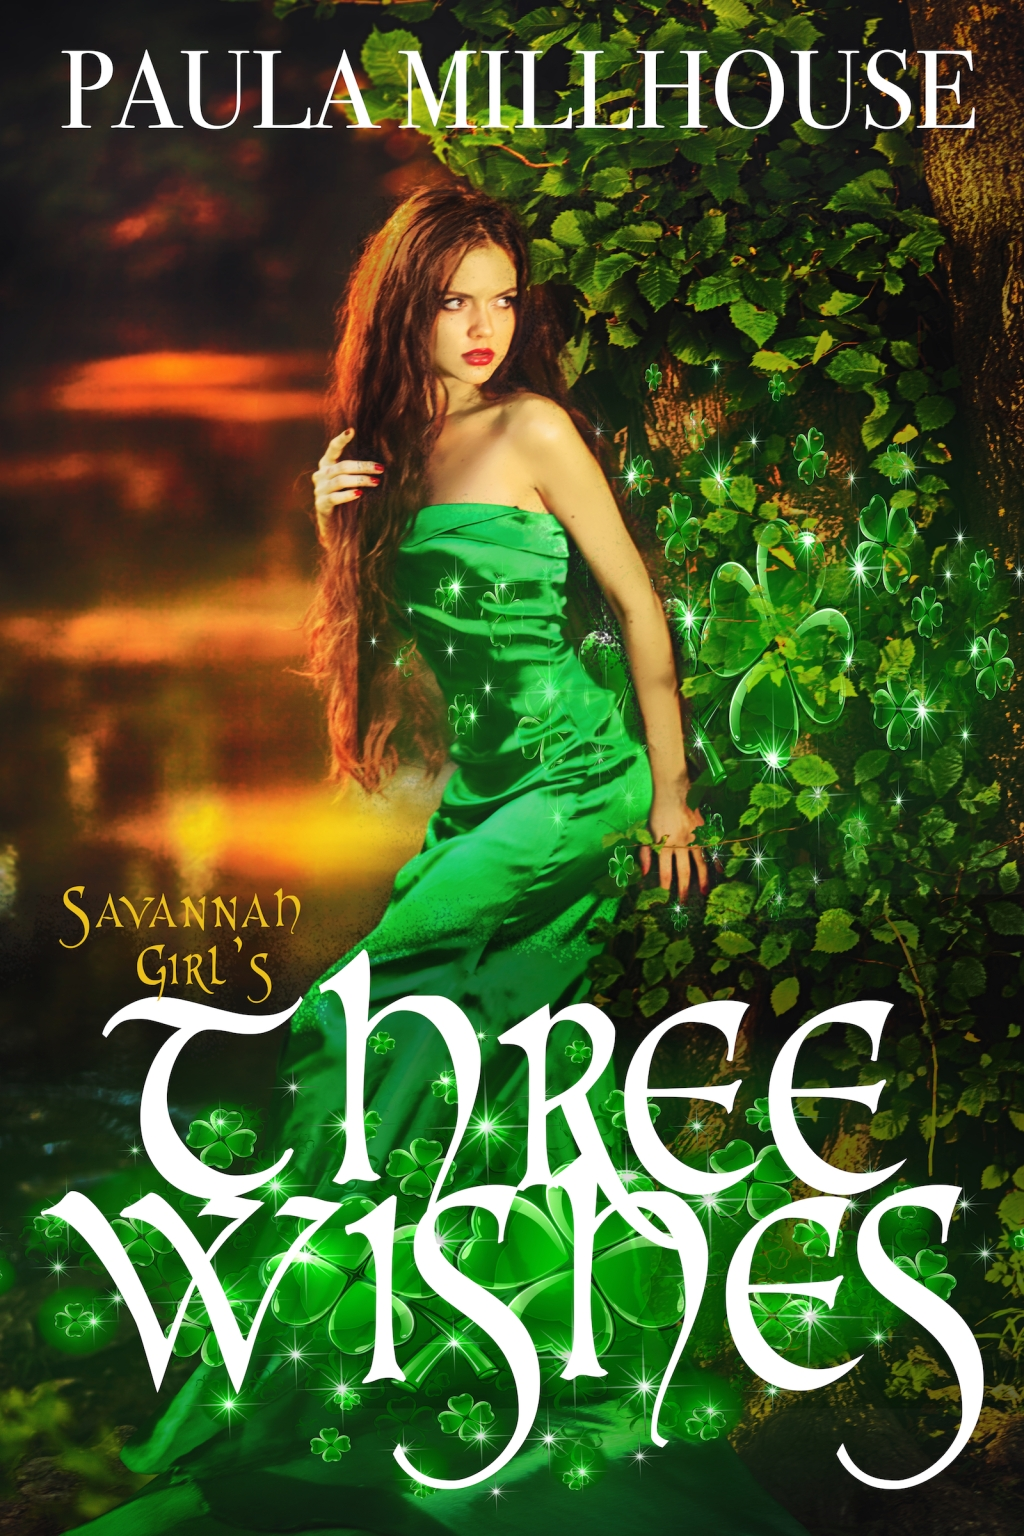 Savannah, Ga, Savannah Girl, Savannah Girl's Three Wishes, New Adult, Romance, St. Patrick's Day, Irish, River Street, Historic District, Fairies, Fae, Fairy Doors, Fairy Charms, Paula Millhouse, 2018